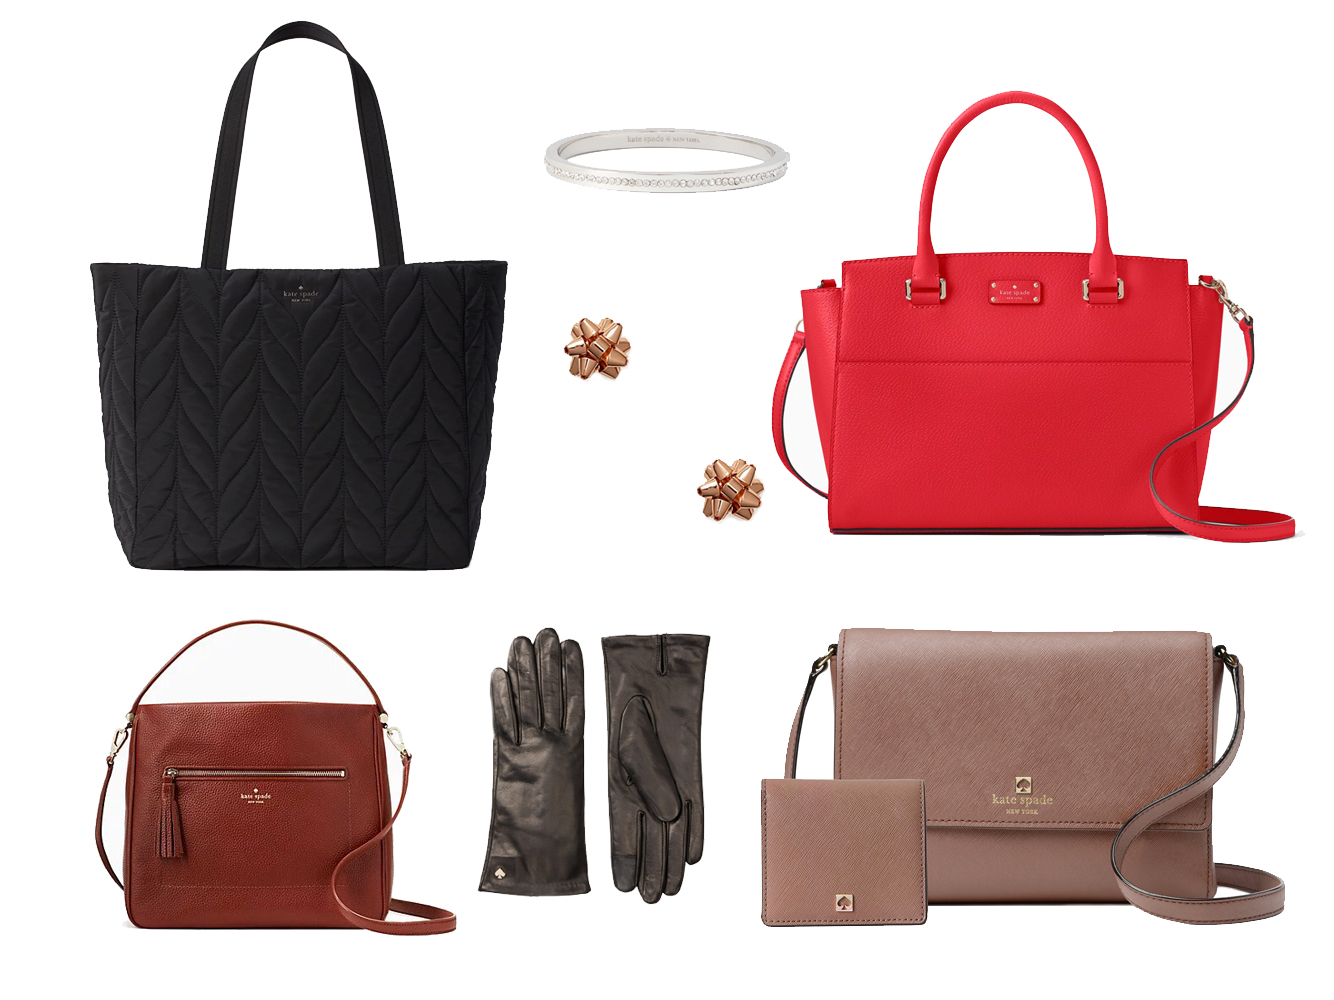 Kate Spade Bag Gloves and Jewelry Collage Tout